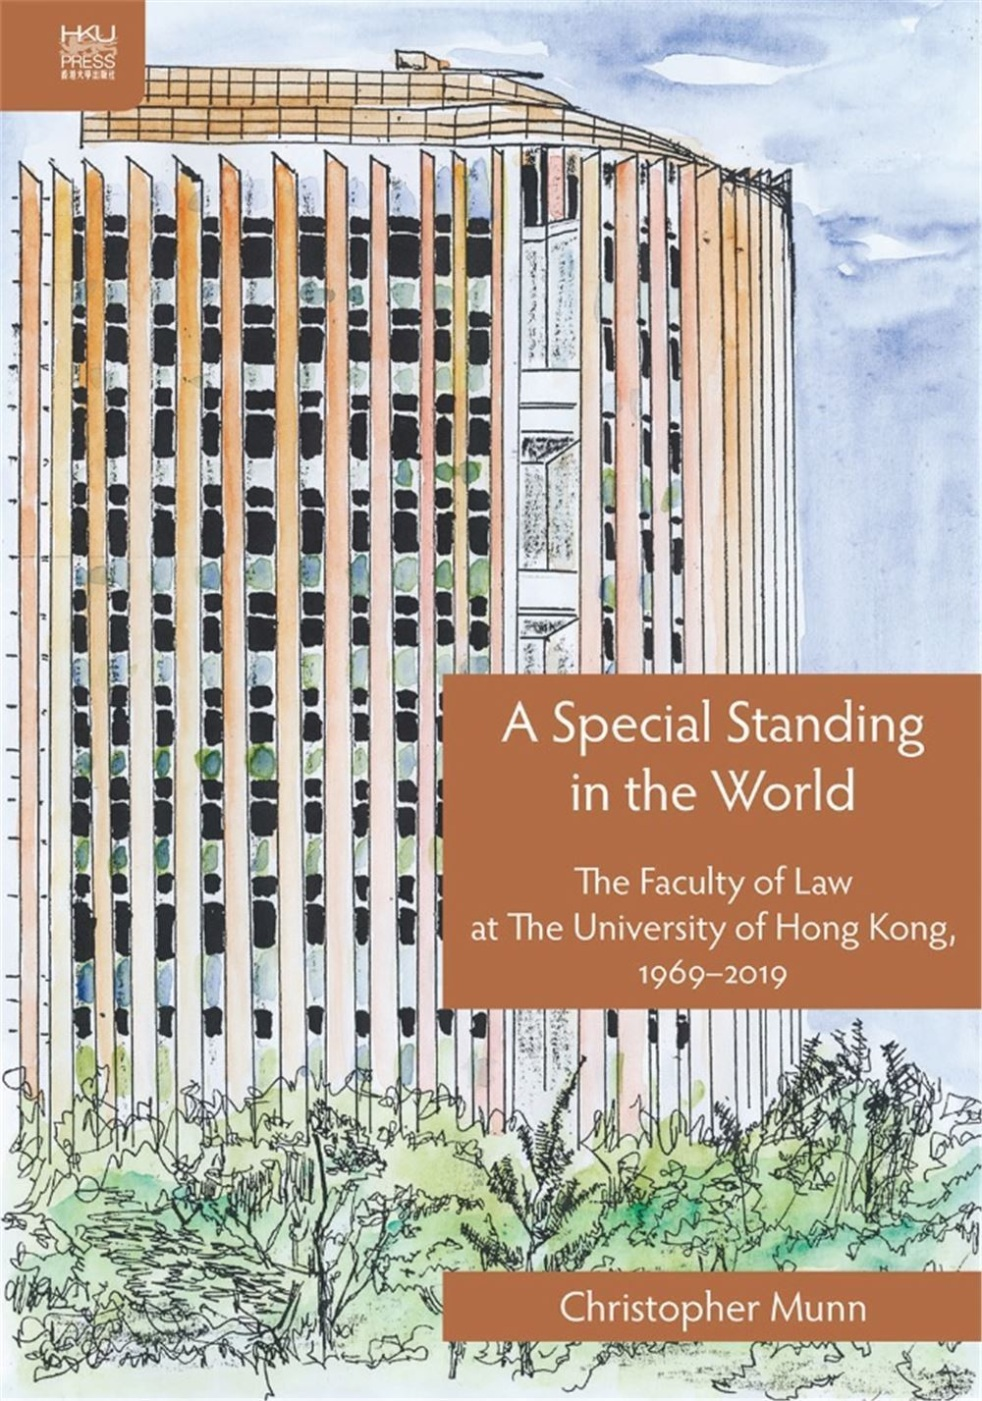 A Special Standing in the World:The Faculty of Law at The University of Hong Kong, 1969–2019